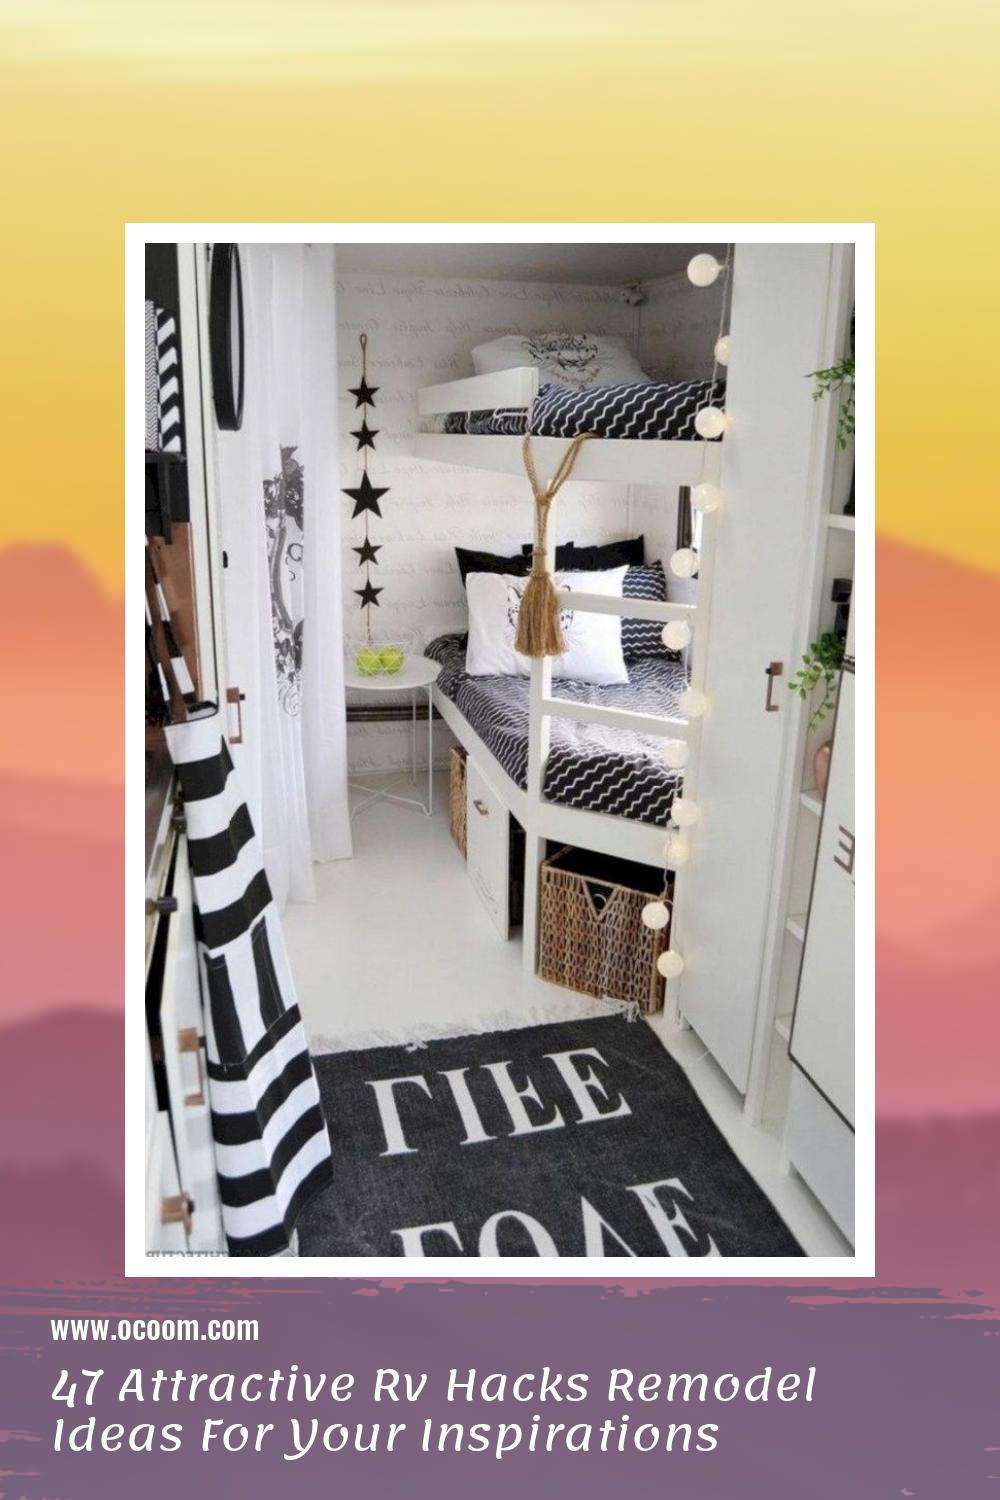 47 Attractive Rv Hacks Remodel Ideas For Your Inspirations 7